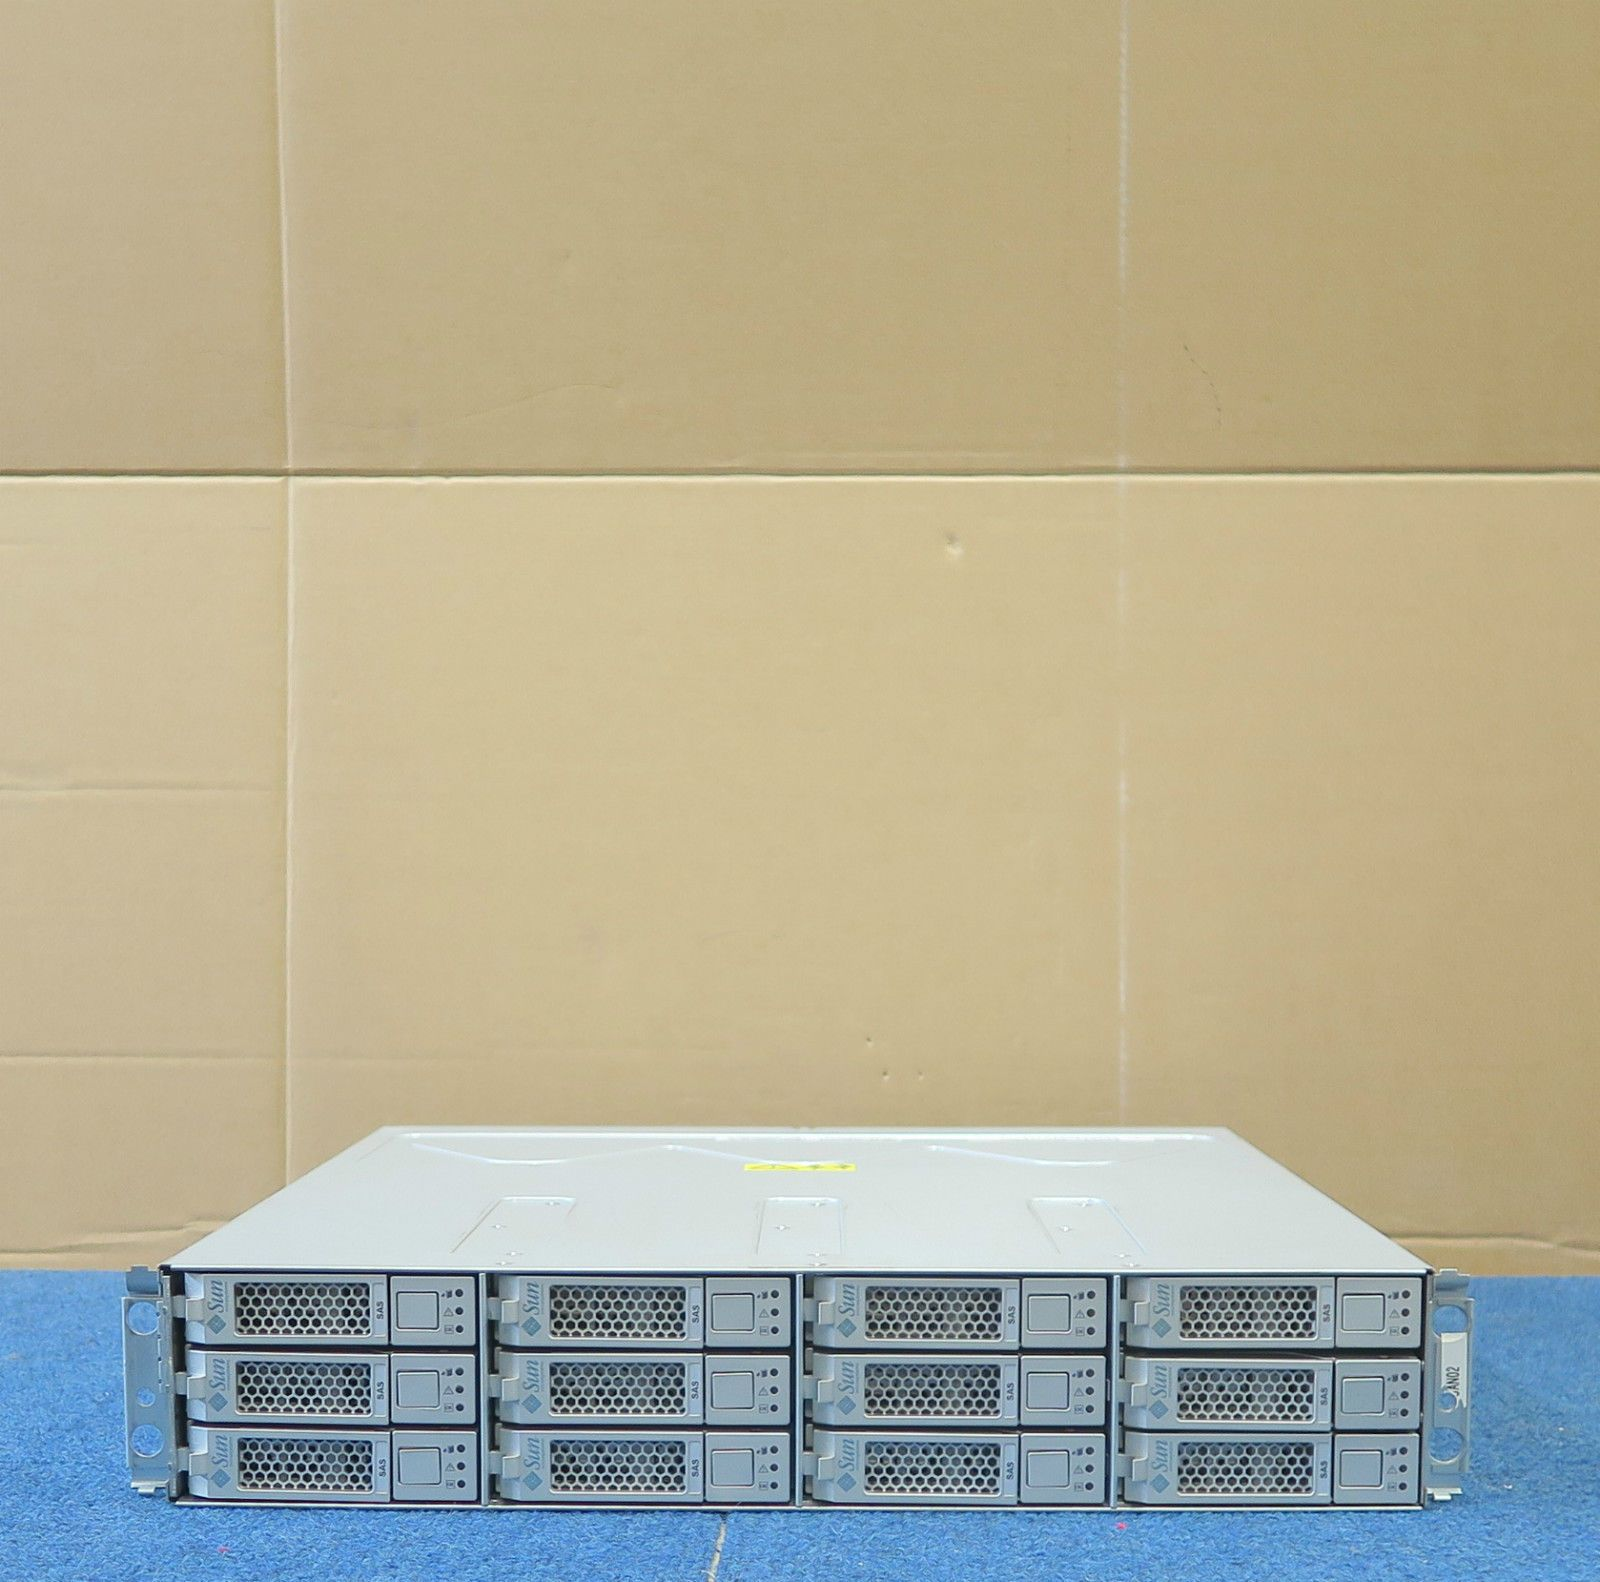 Sun Storage Tek 2540 12 x 450GB 15K SAS 2x Controllers 2x PSU 594-5730-01  Array